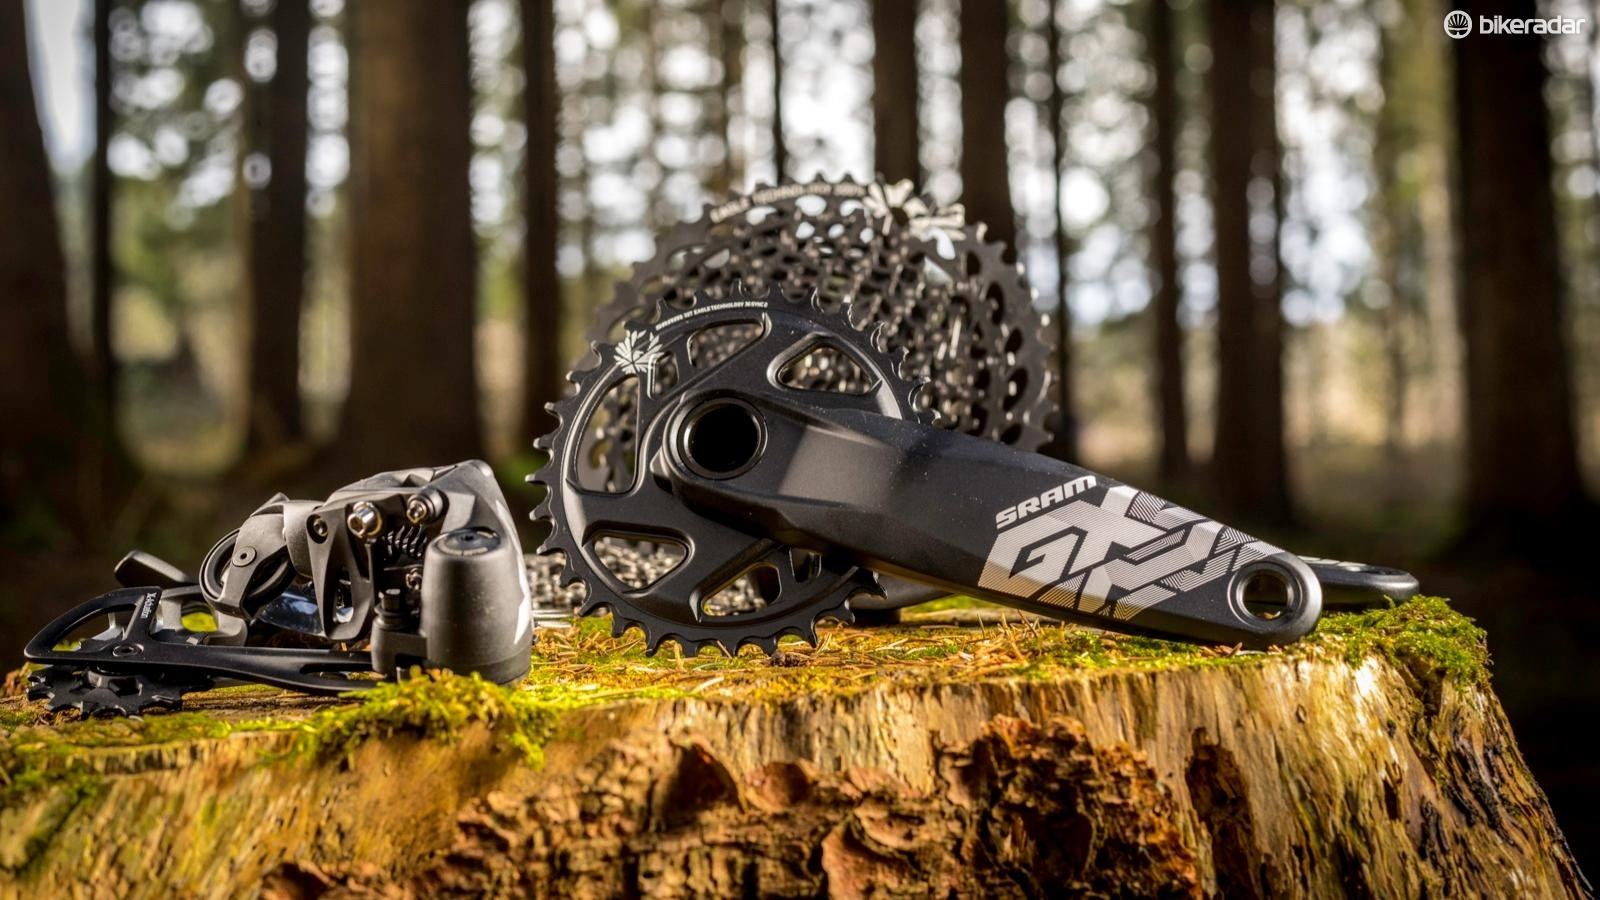 SRAM's GX Eagle drivetrain has 12 speeds and a lot of performance for the money